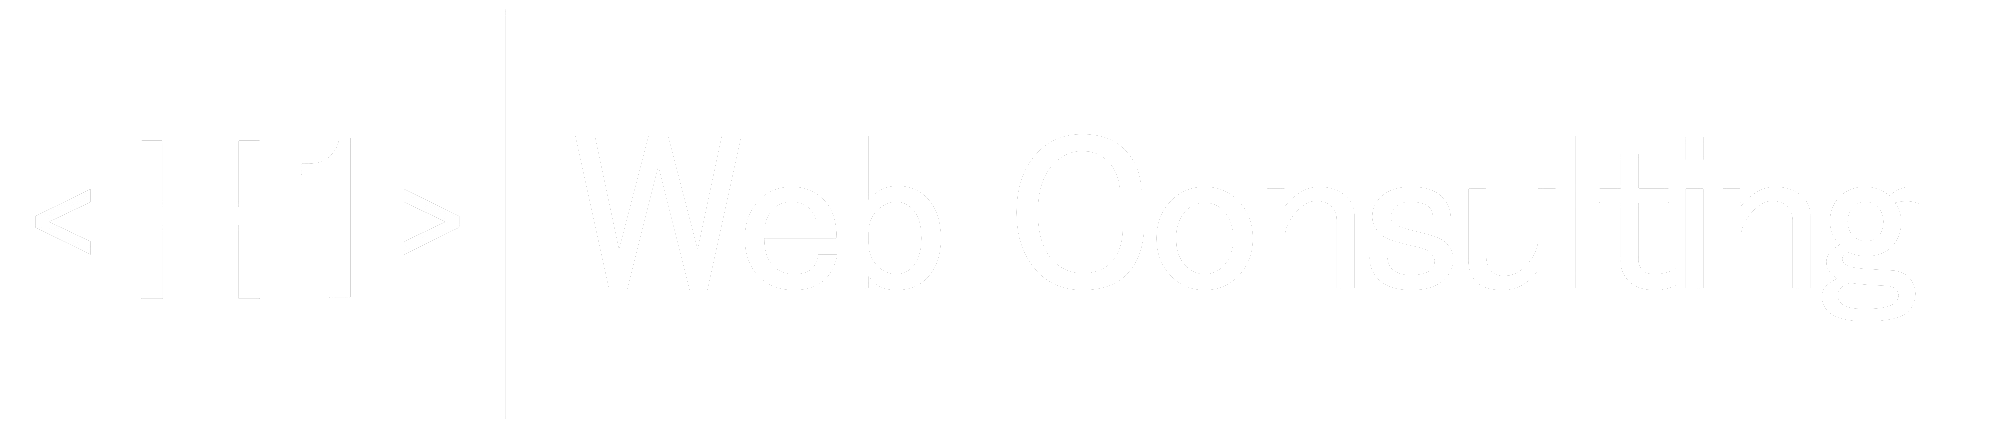 H1 Web Consulting Logo